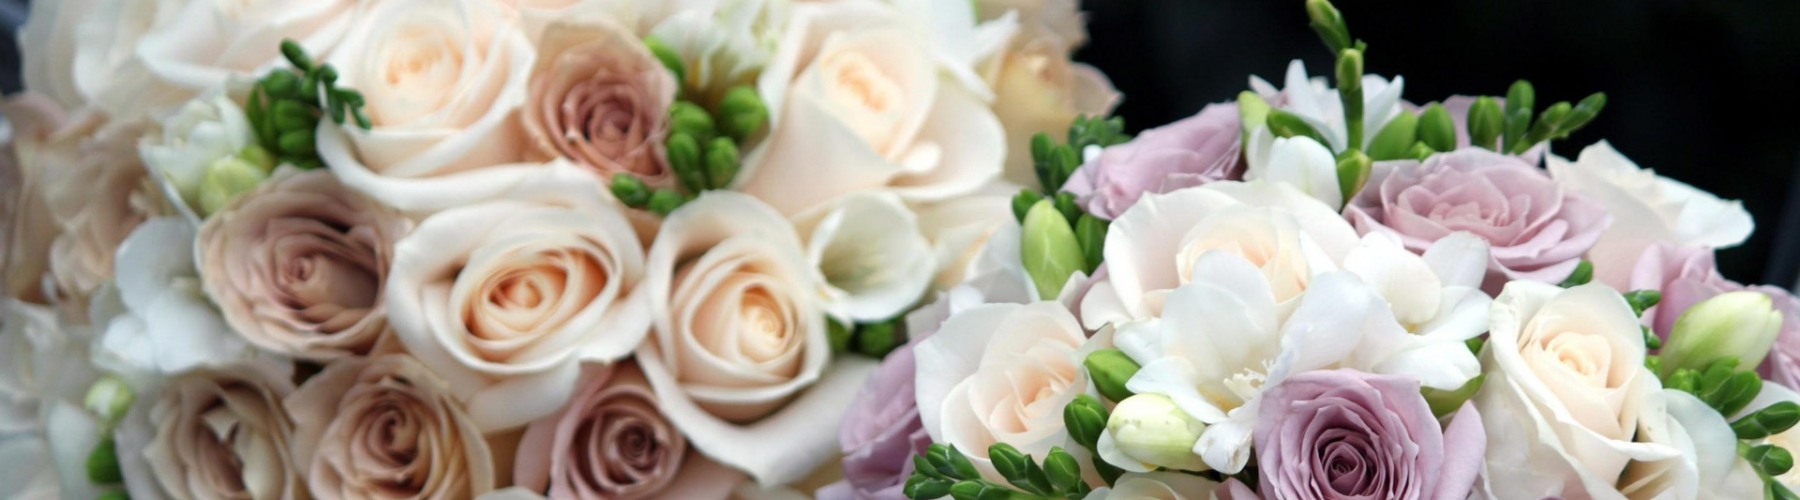 cropped-Roses_flowers_wedding_bouqu